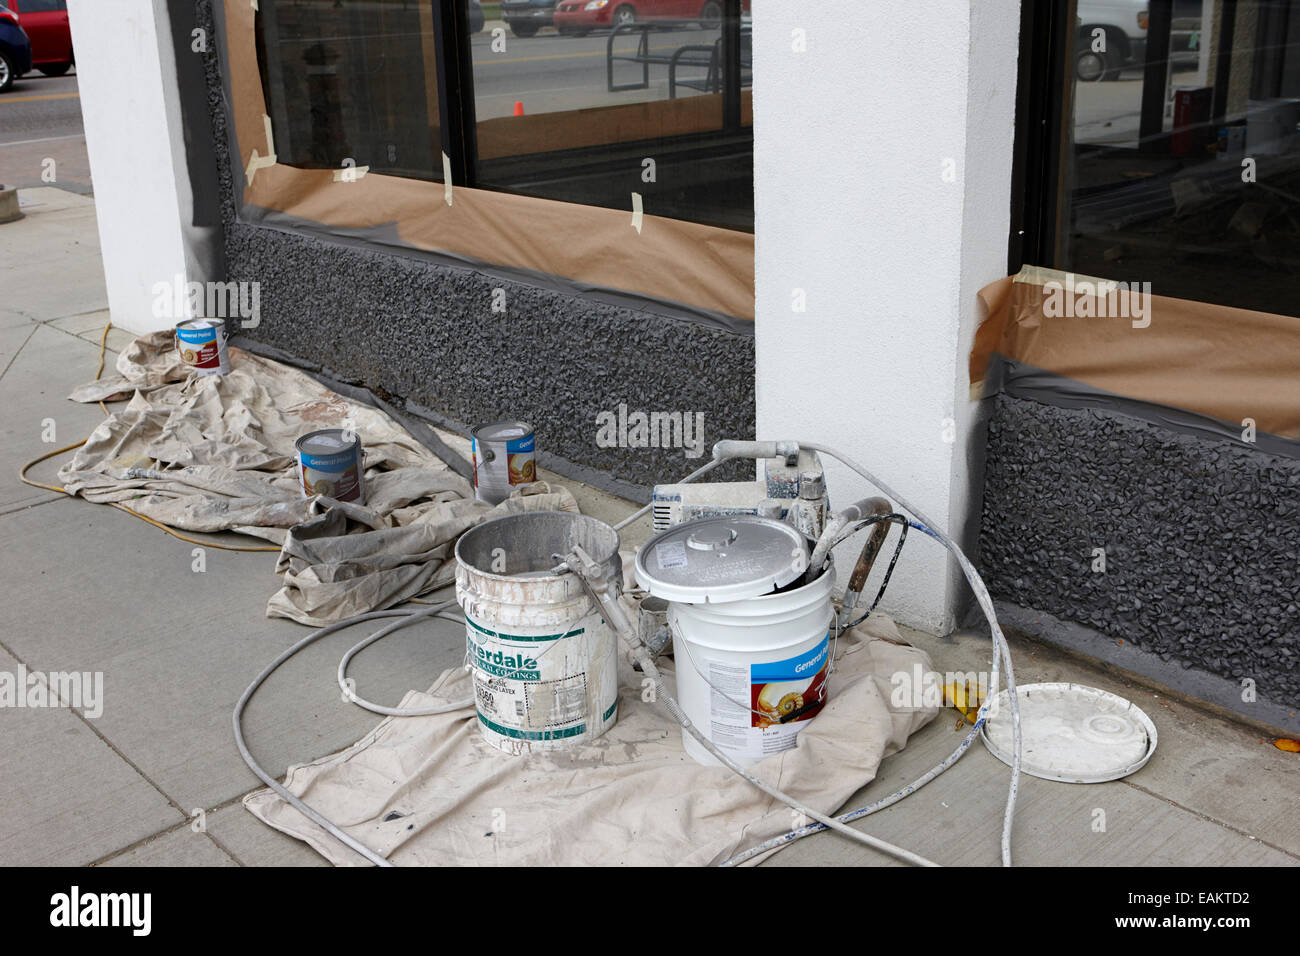 spray paint architectural coating equipment Saskatchewan Canada - Stock Image